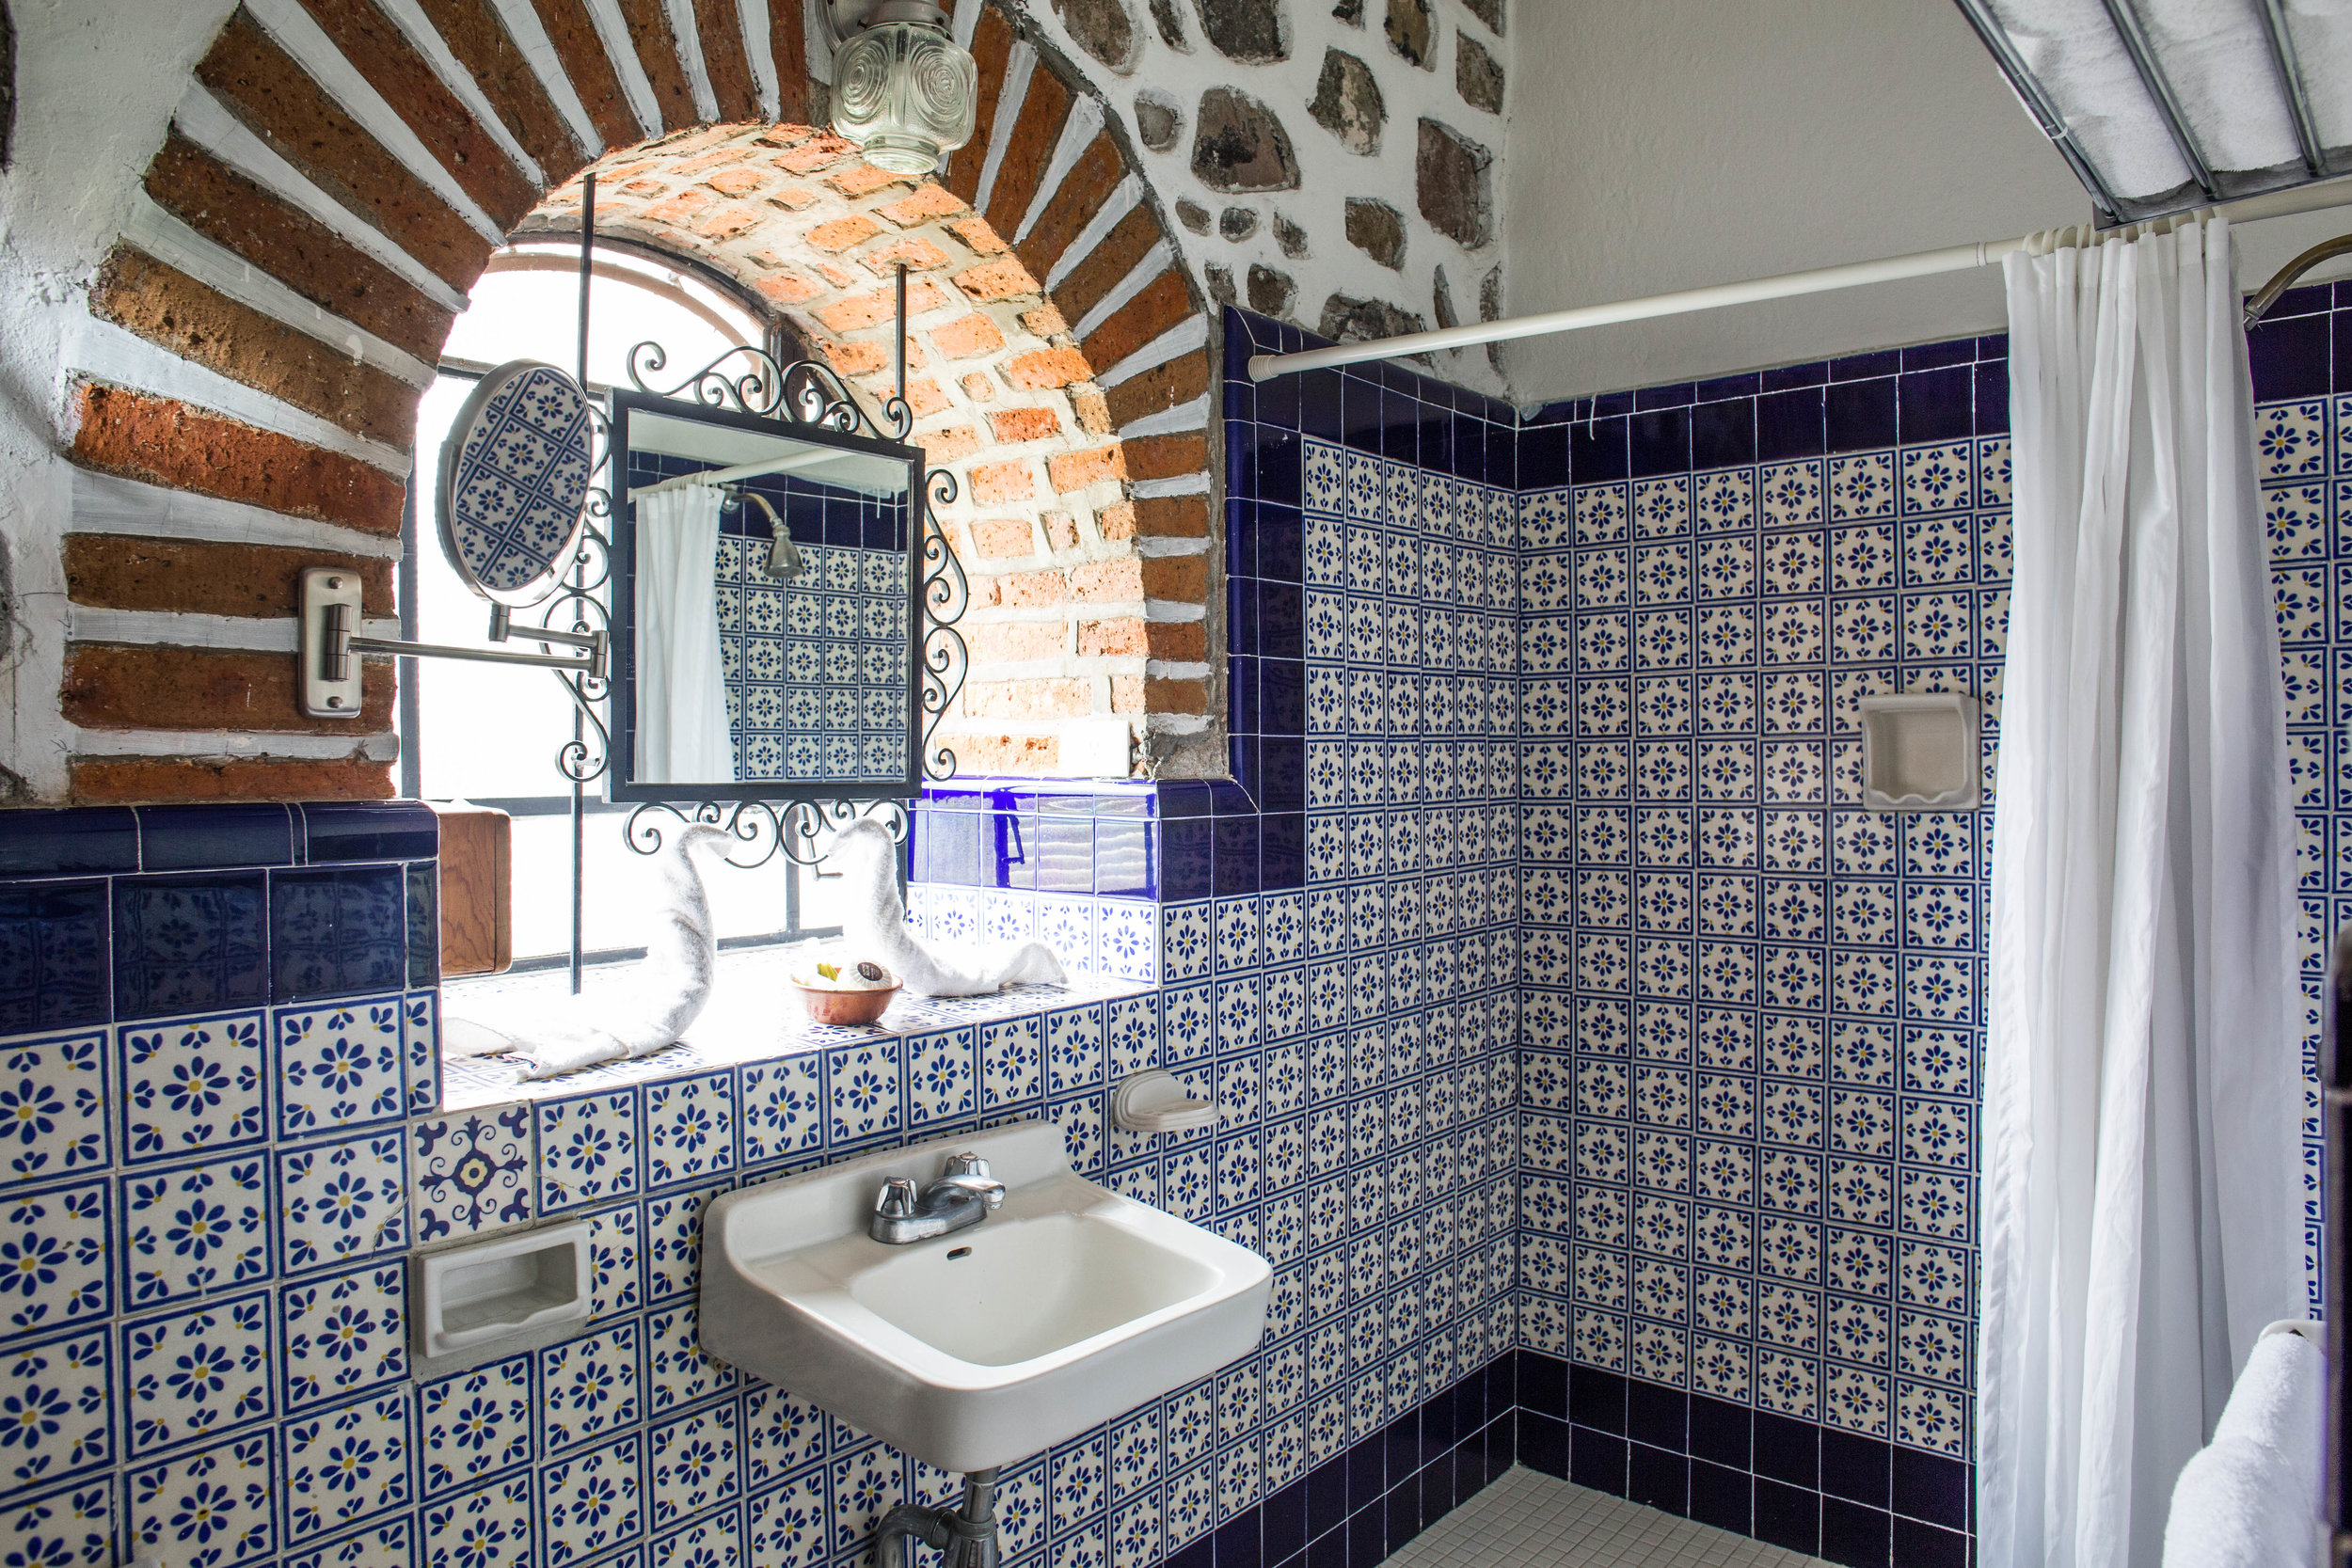 Hand-Painted Tiles in Colonial Room Bathroom